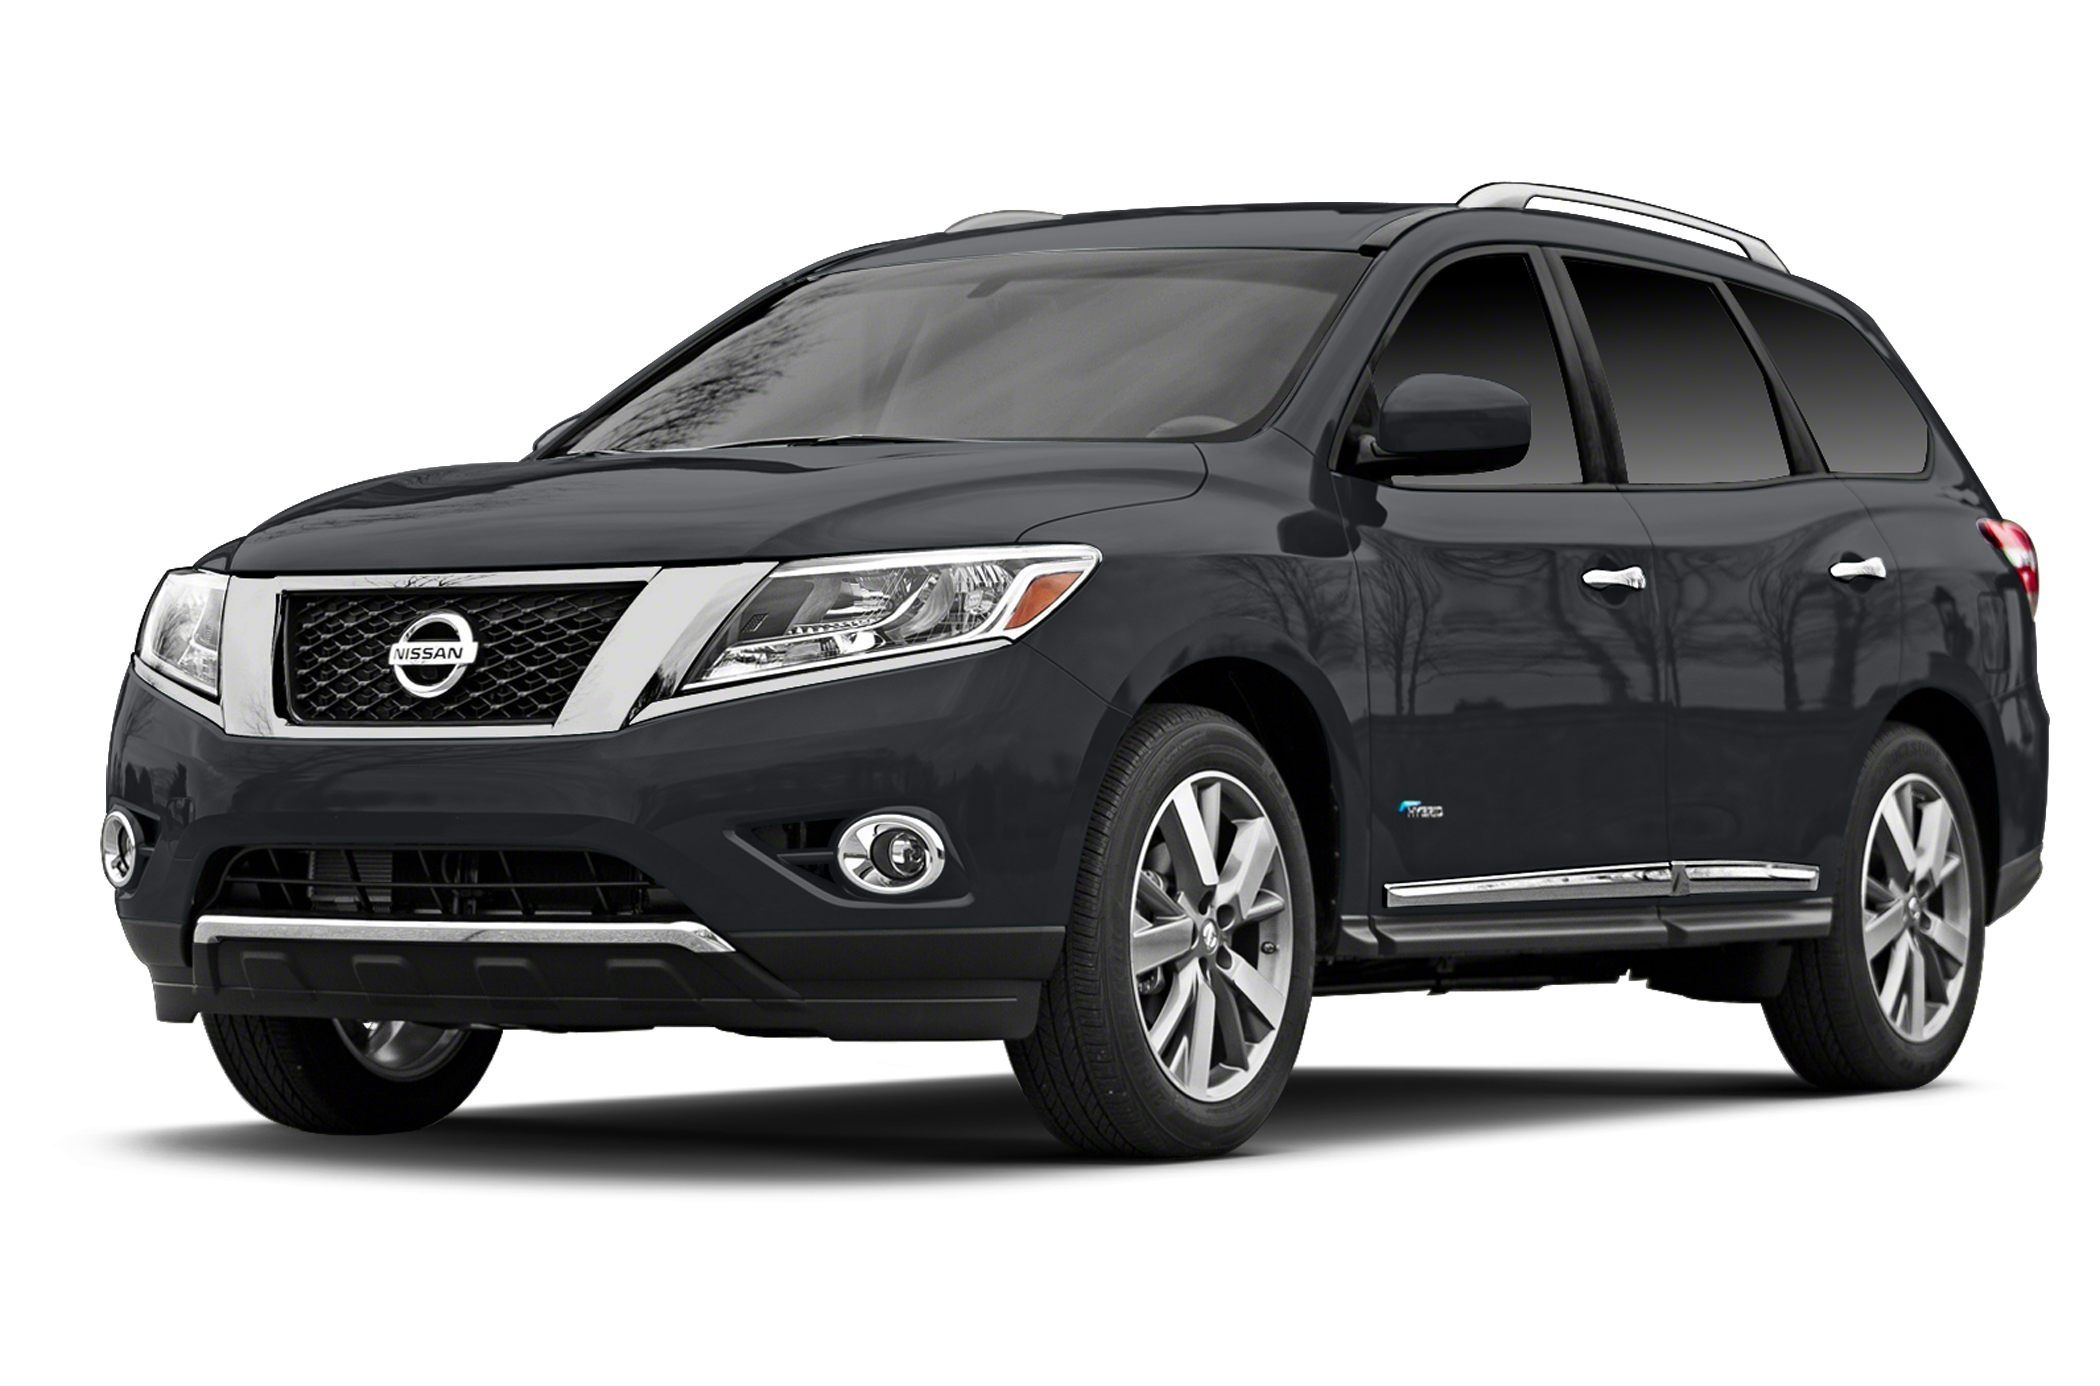 2014 Nissan Pathfinder R50 series Repair Service Manual | NISSAN